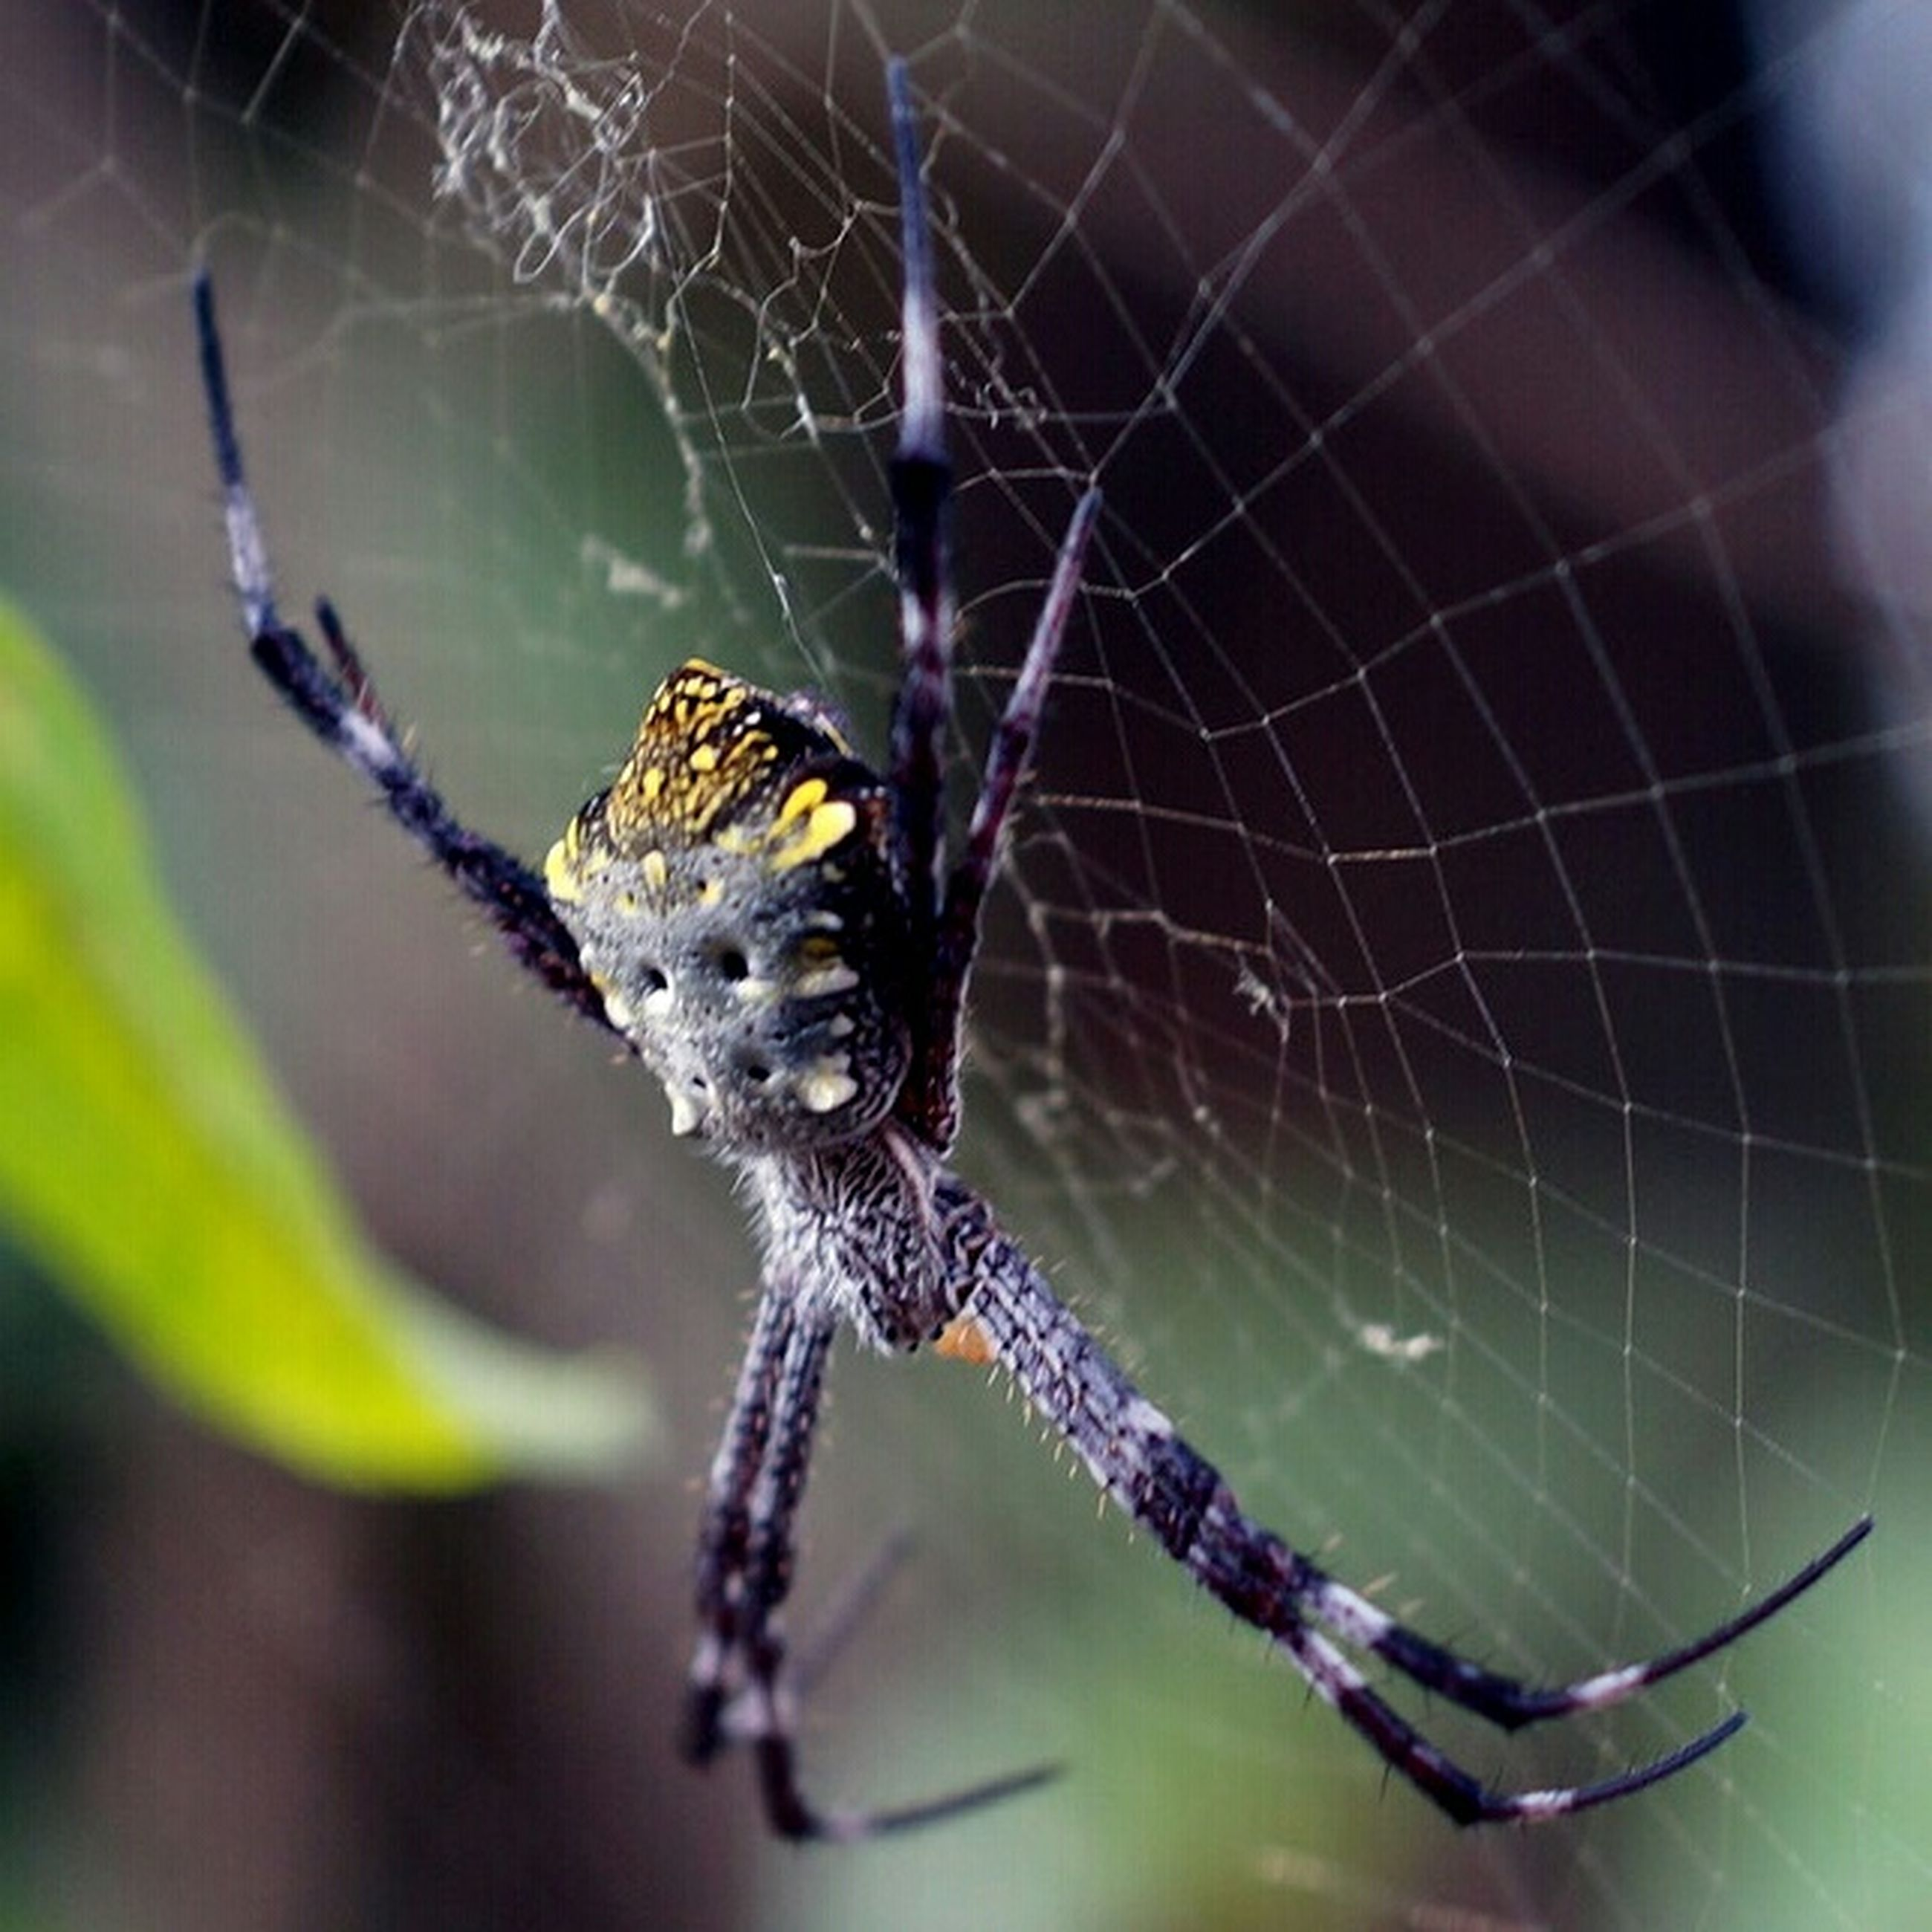 animal themes, one animal, animals in the wild, wildlife, spider web, spider, close-up, focus on foreground, insect, selective focus, nature, outdoors, zoology, animal body part, day, natural pattern, no people, danger, arachnid